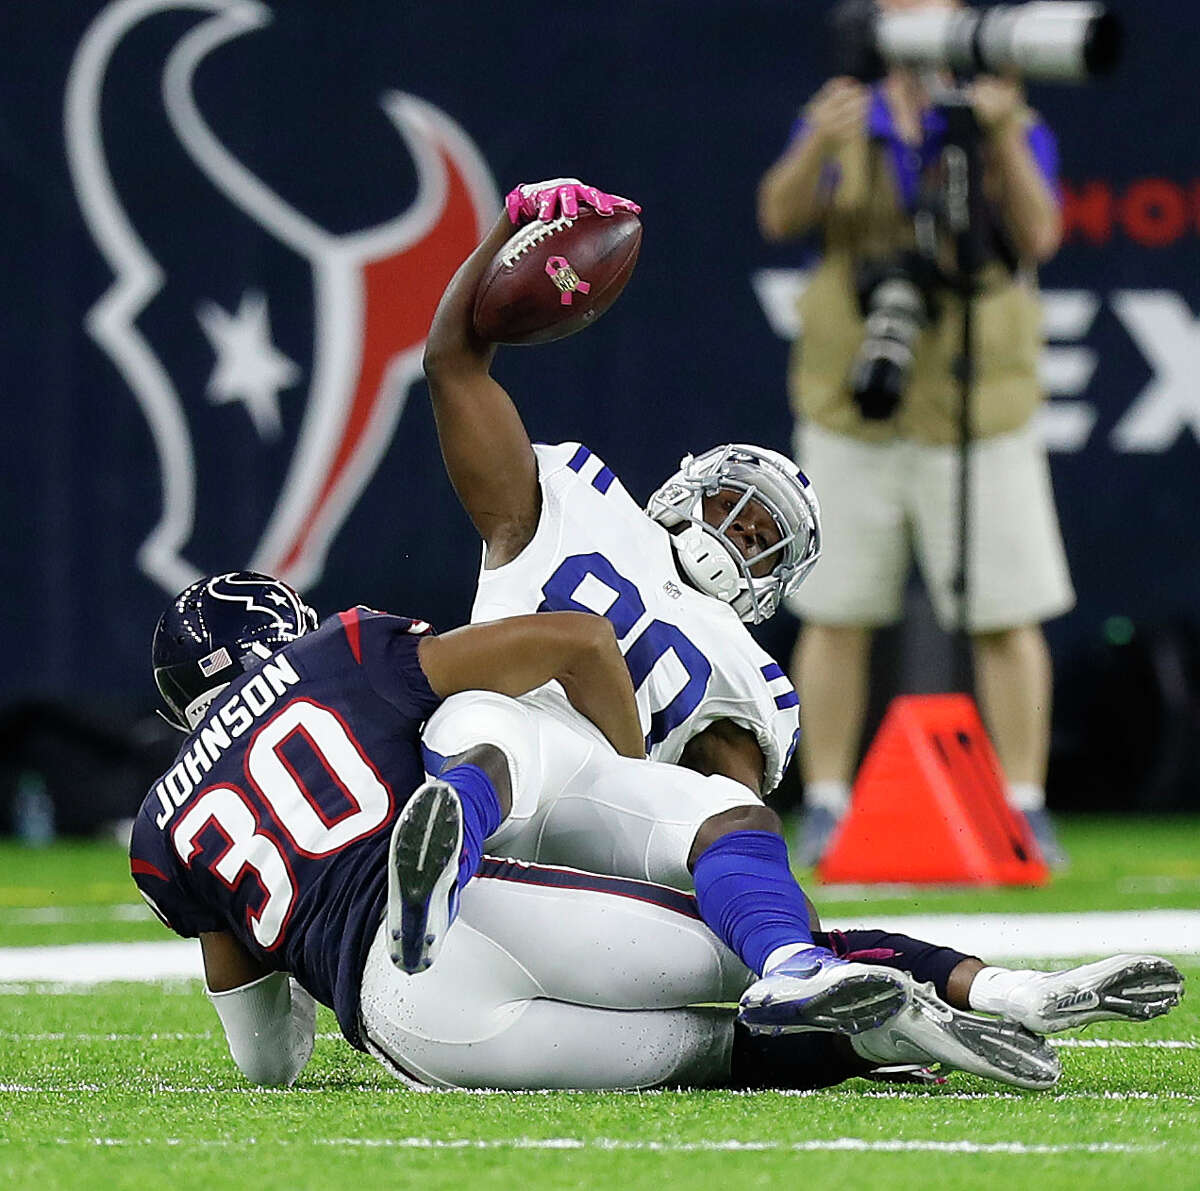 Indianapolis Colts wide receiver Chester Rogers (80) gets stopped by Houston Texans cornerback Kevin Johnson (30) during the second quarter of an NFL football game at NRG Stadium, Sunday,Oct. 16, 2016 in Houston.